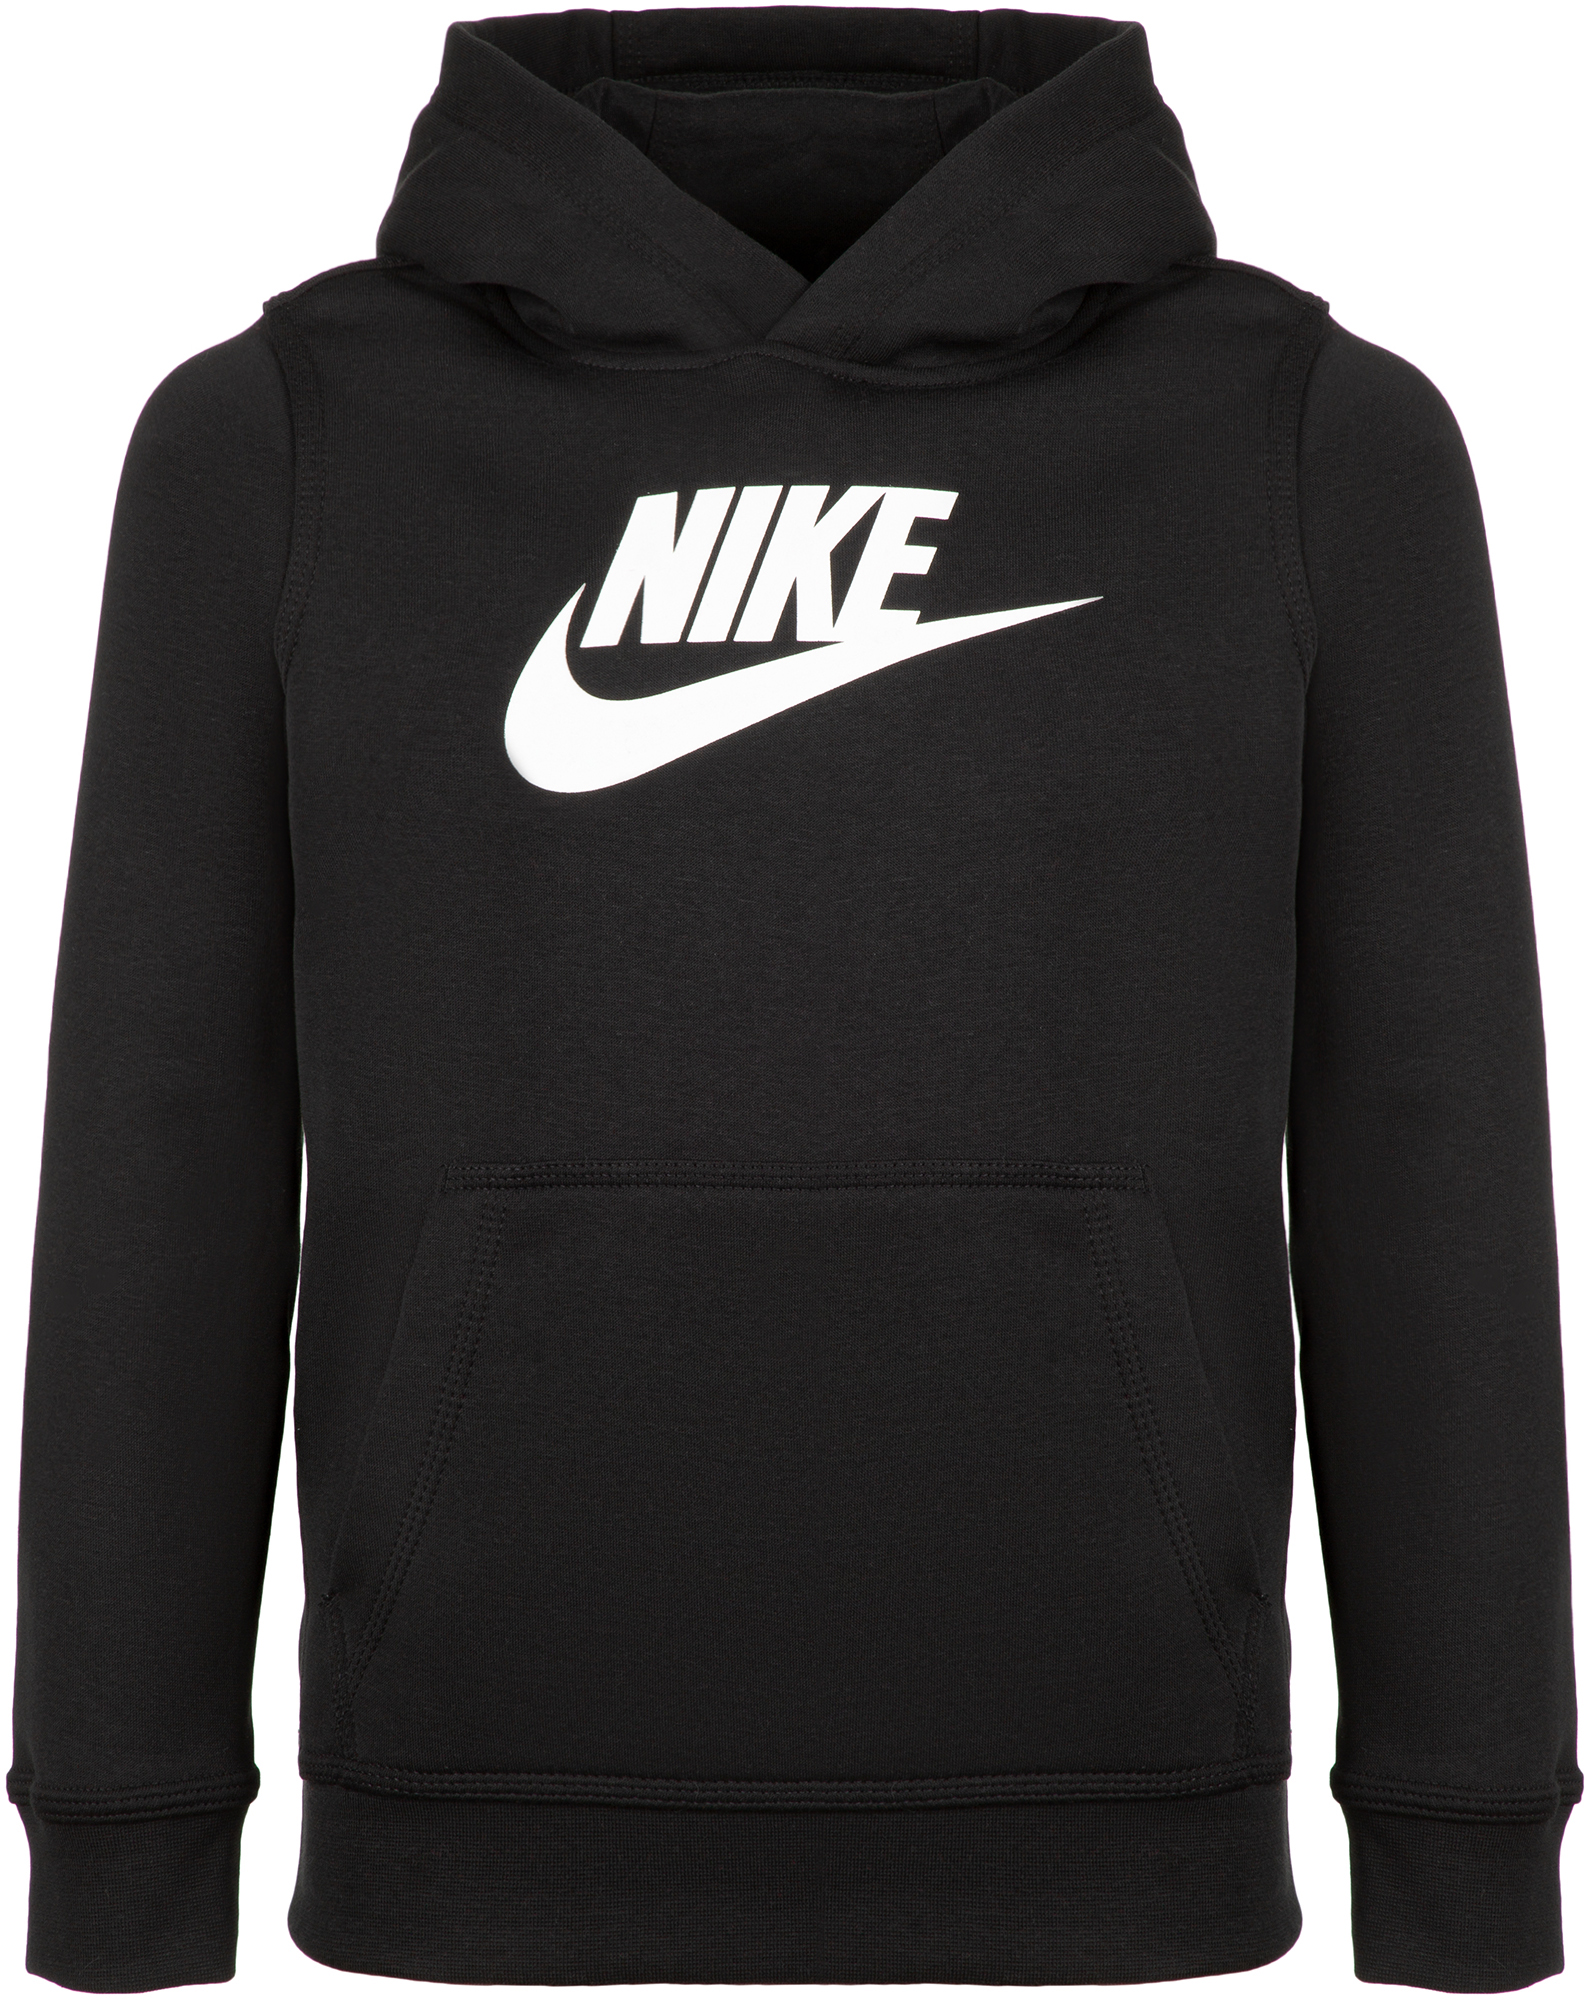 Nike Худи для мальчиков Nike Sportswear Club Fleece, размер 158-170 цена